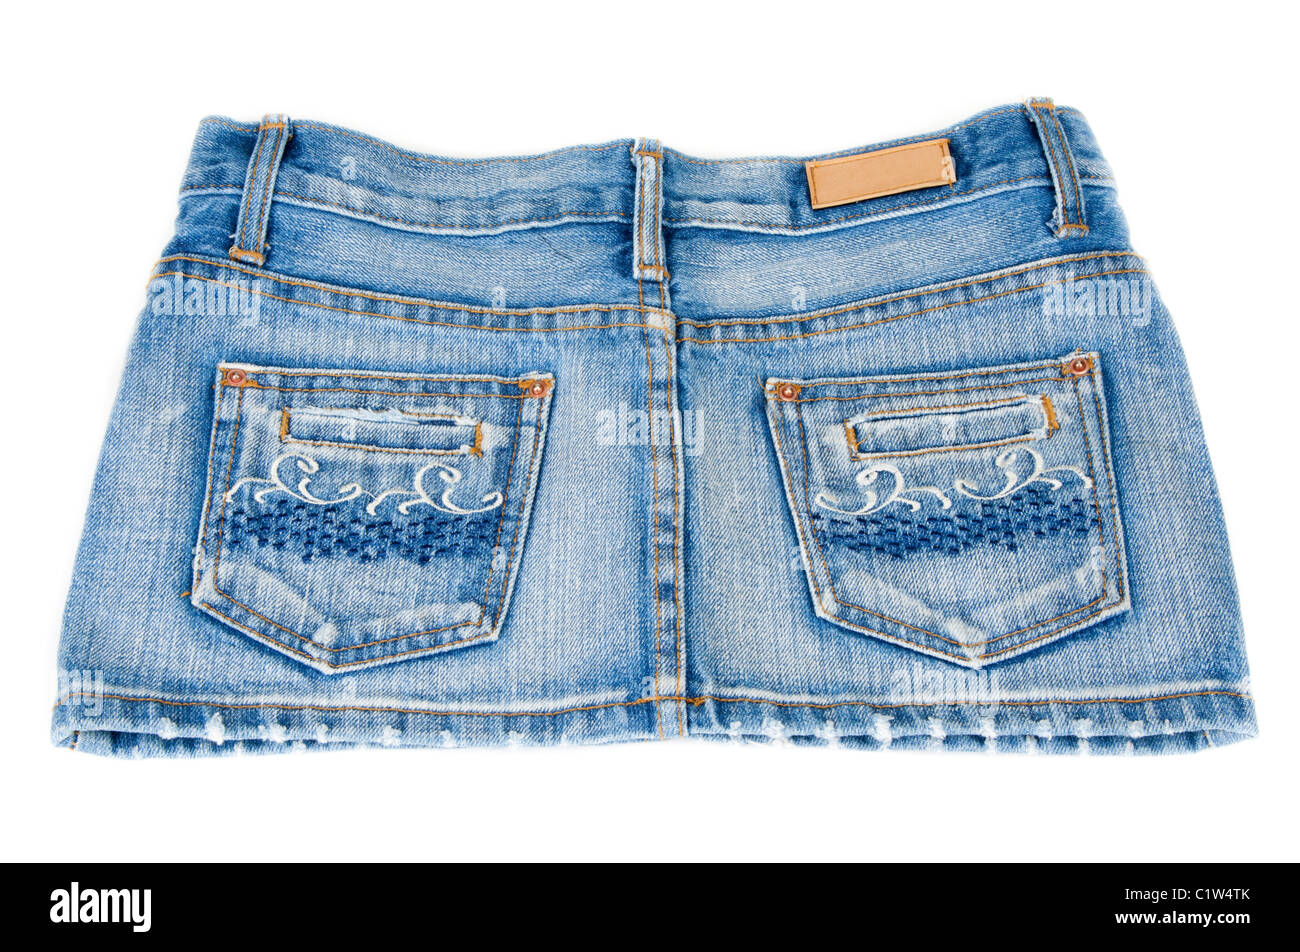 Jeans mini skirt on white background type behind - Stock Image